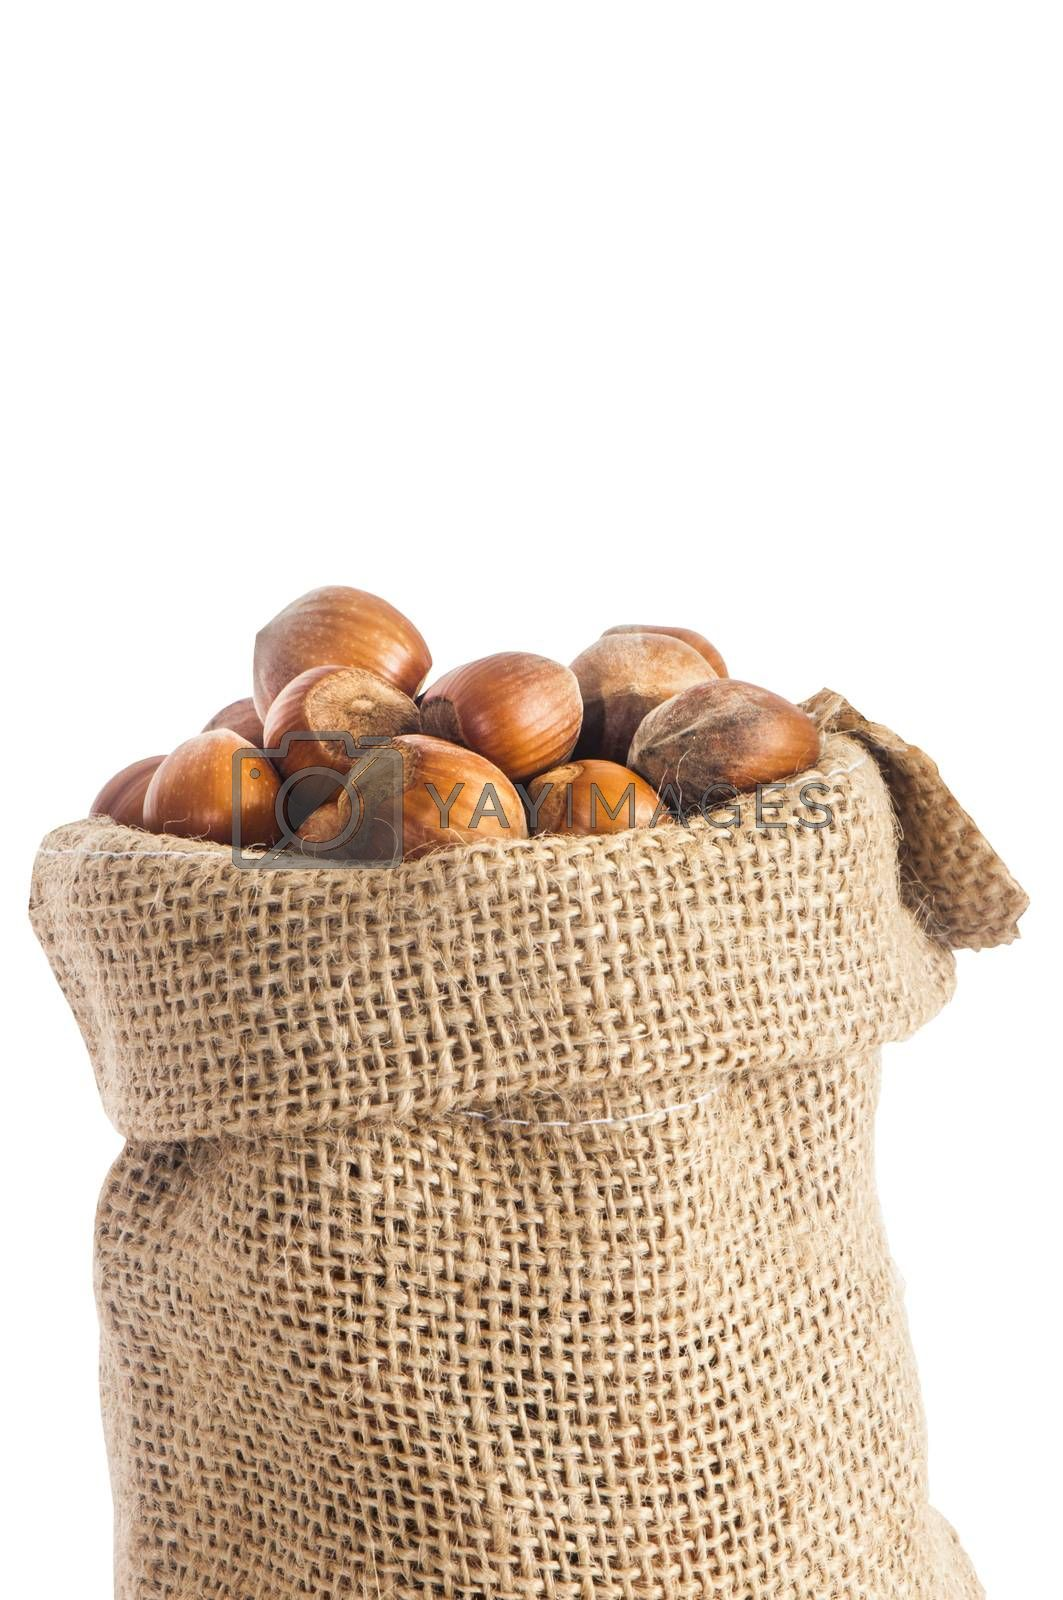 some hazelnuts placed over a white background